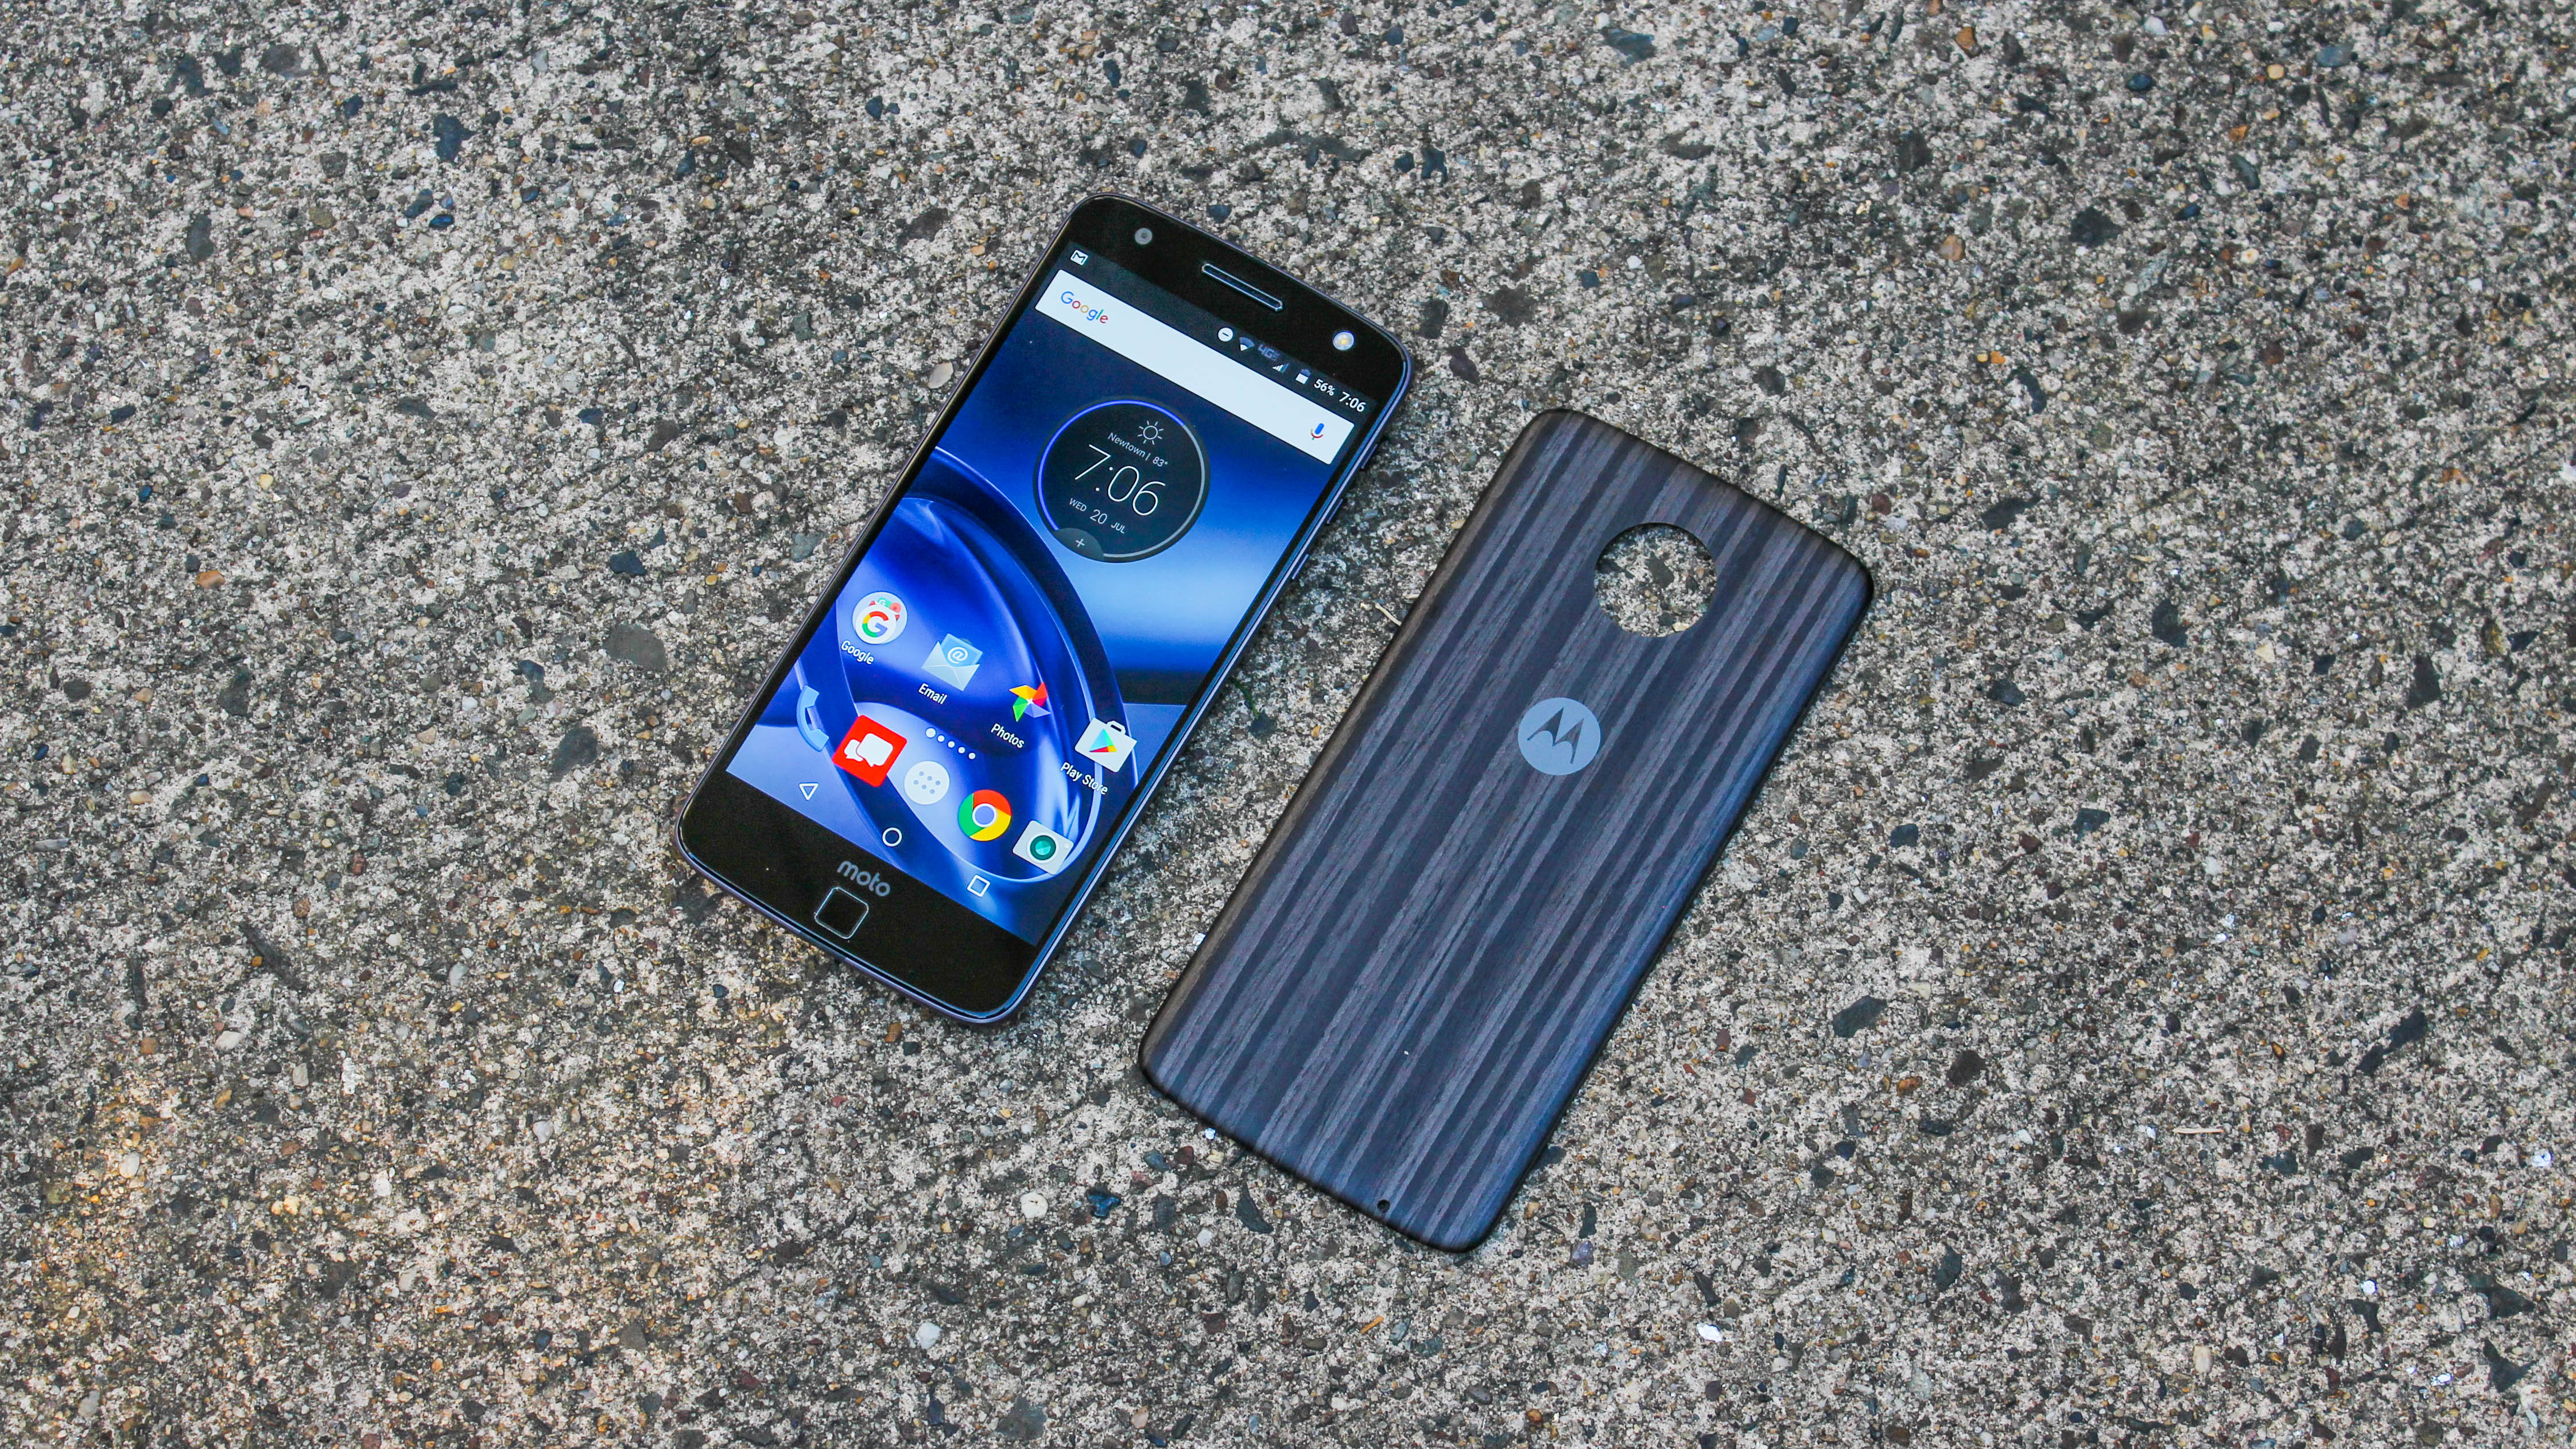 Moto Z Techradar Tiny Efficient High Power Led Camera Flash Solutions For Cell Phone